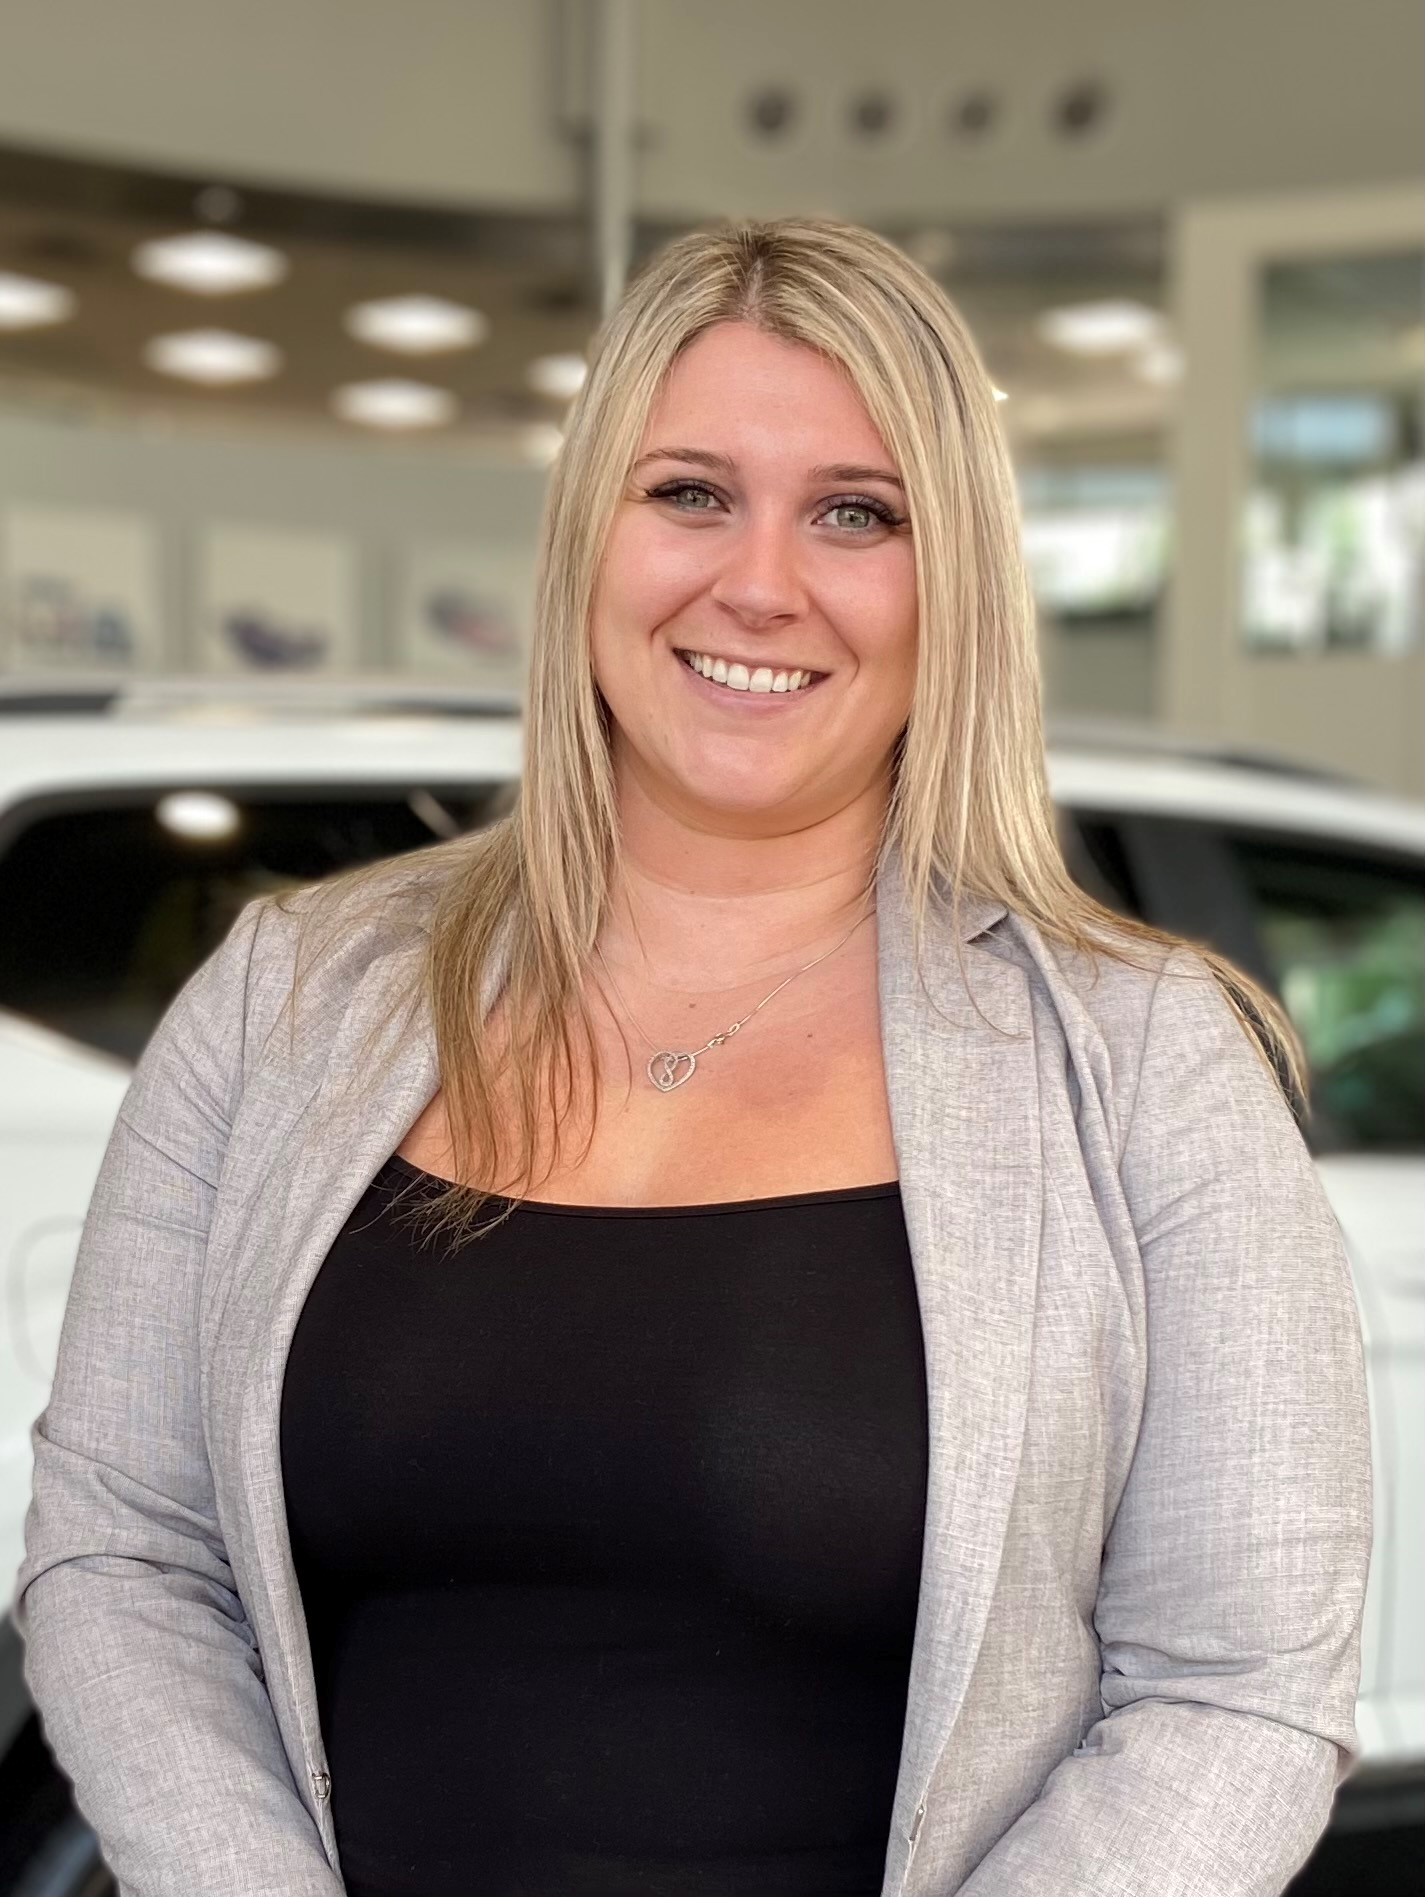 Krystal Winter - Financial Services Manager